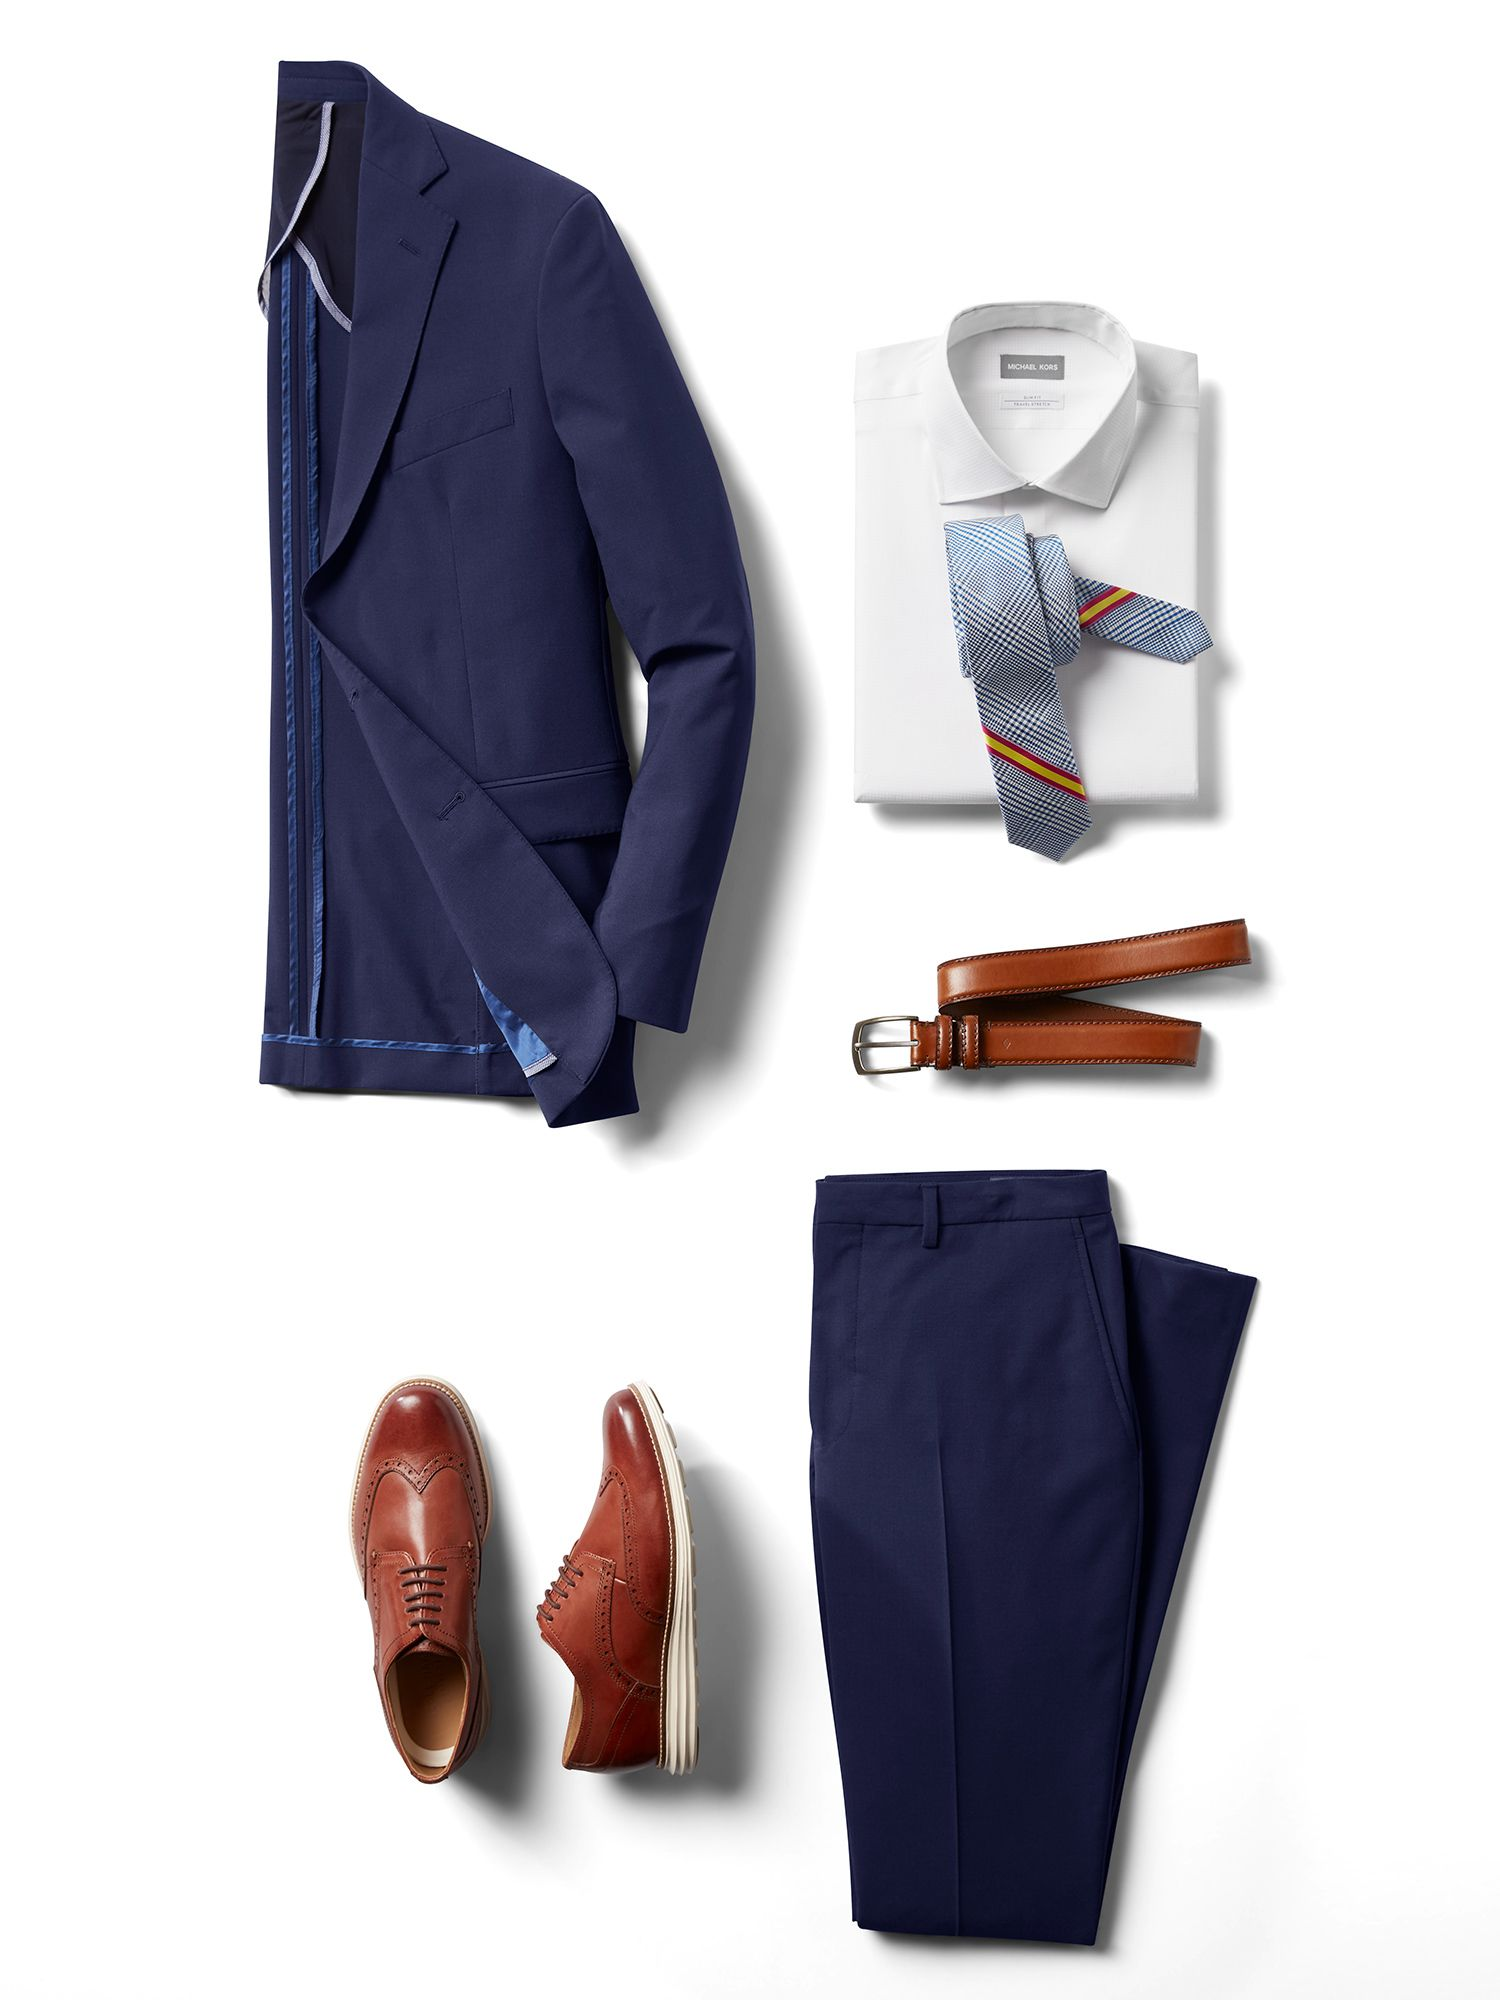 Mens Pre-Styled Looks, Suits - Royal Navy - Men's Wearhouse